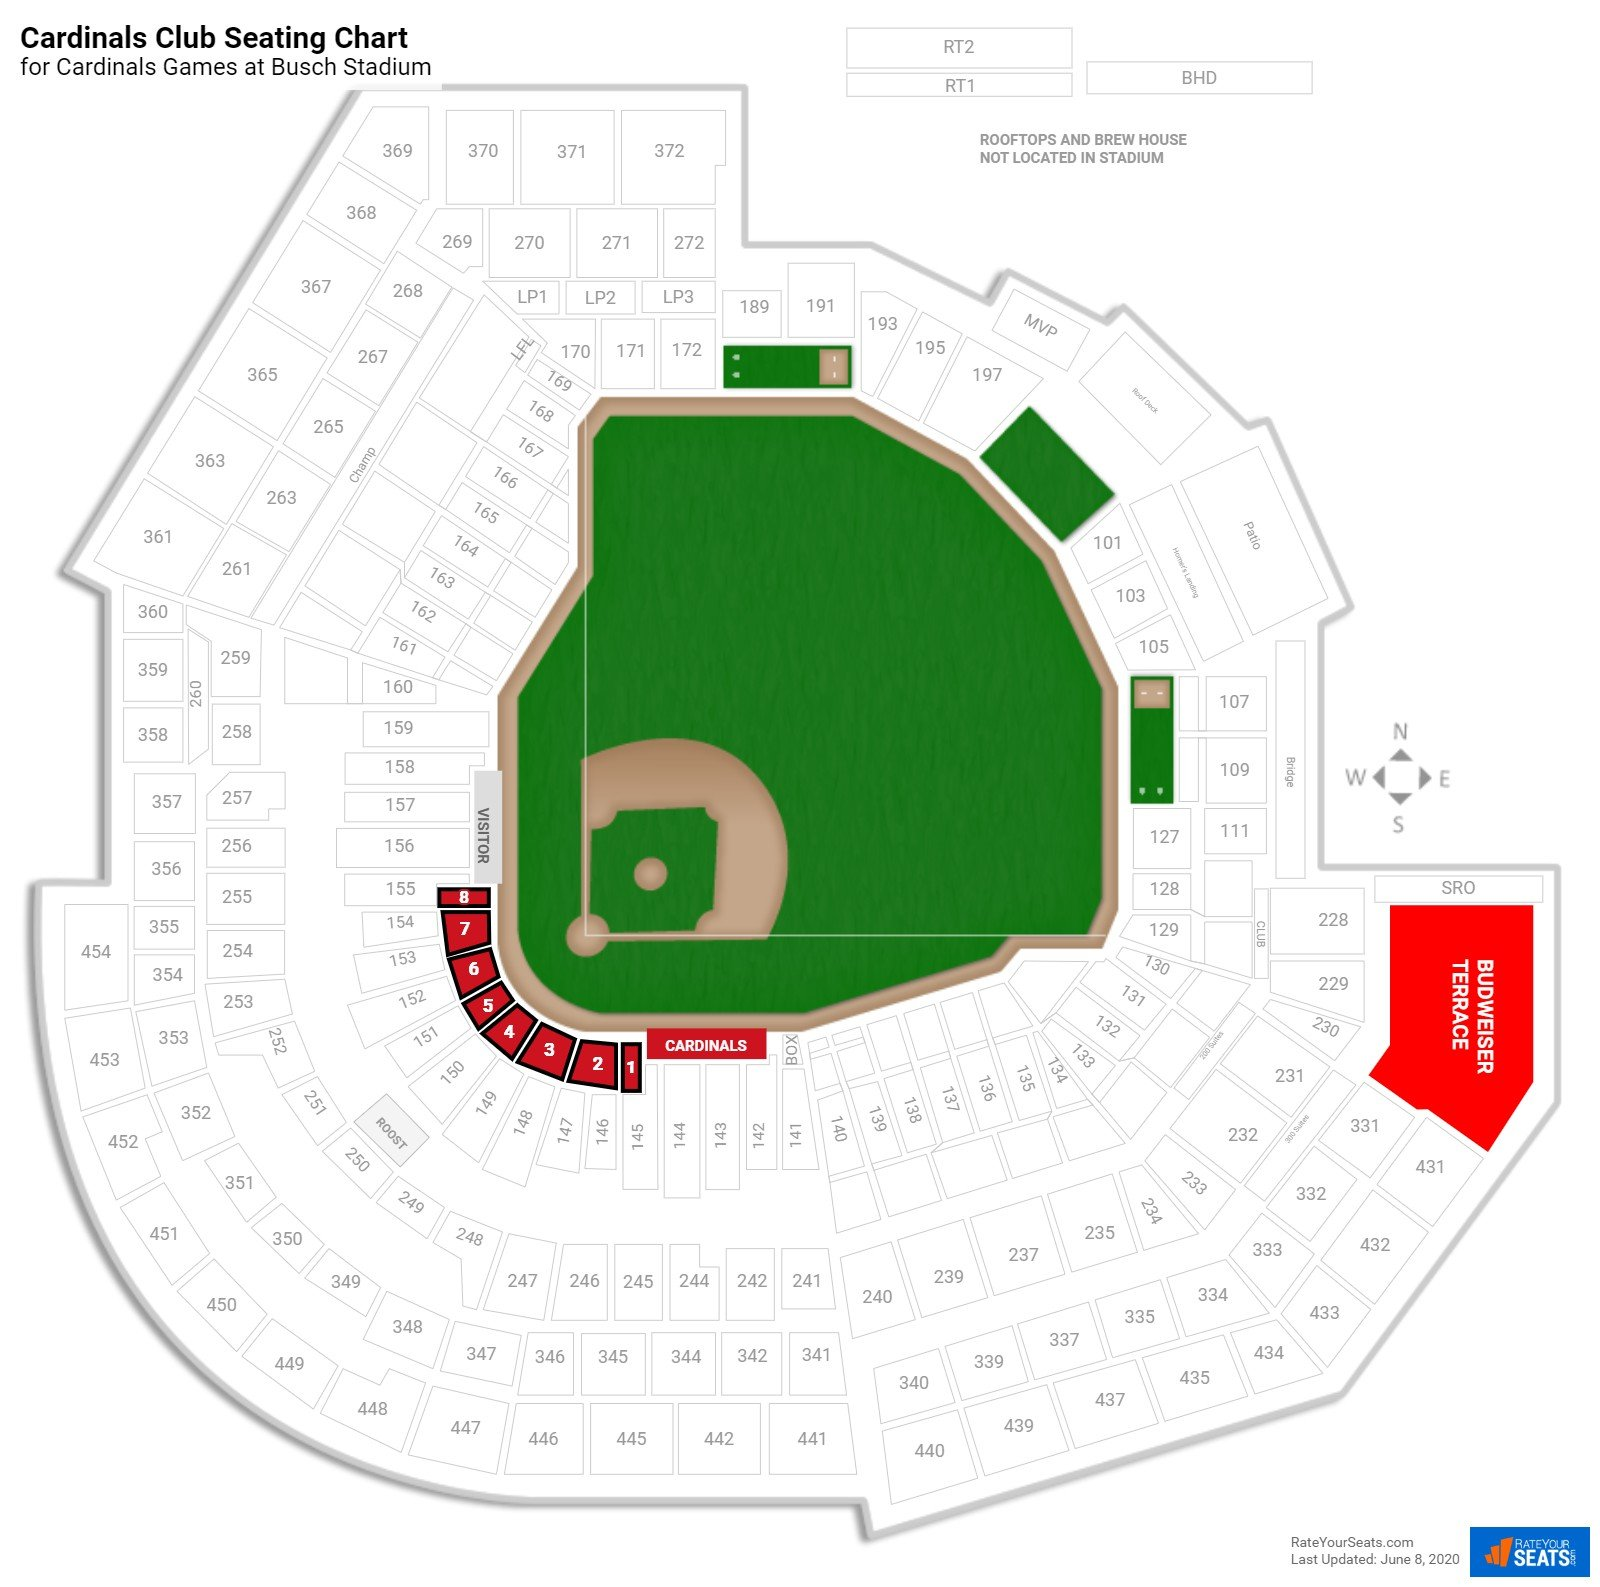 Busch Stadium Cardinals Club seating chart